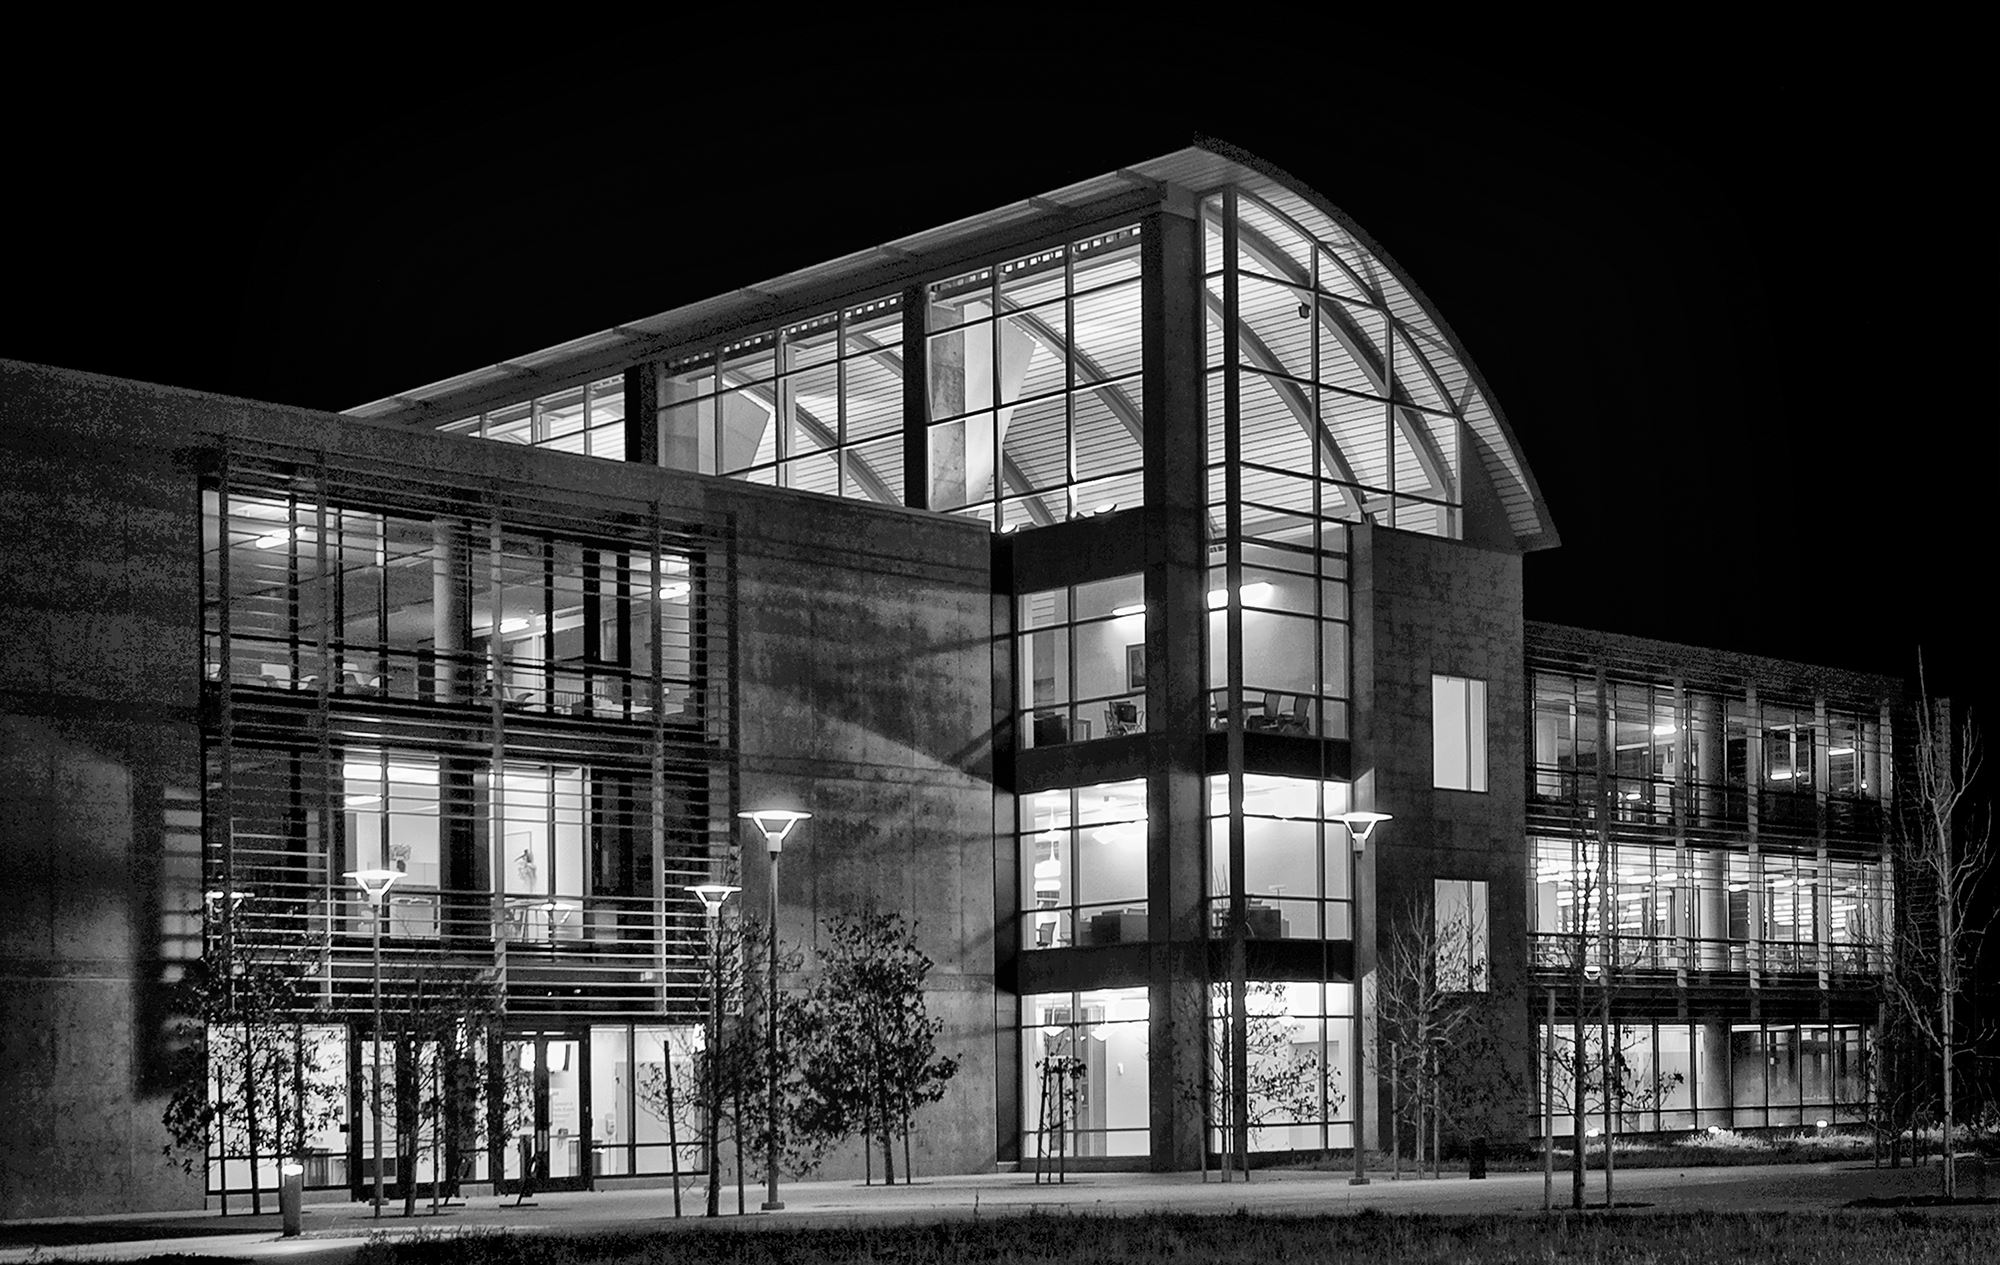 CSUMB Memorial Library at night